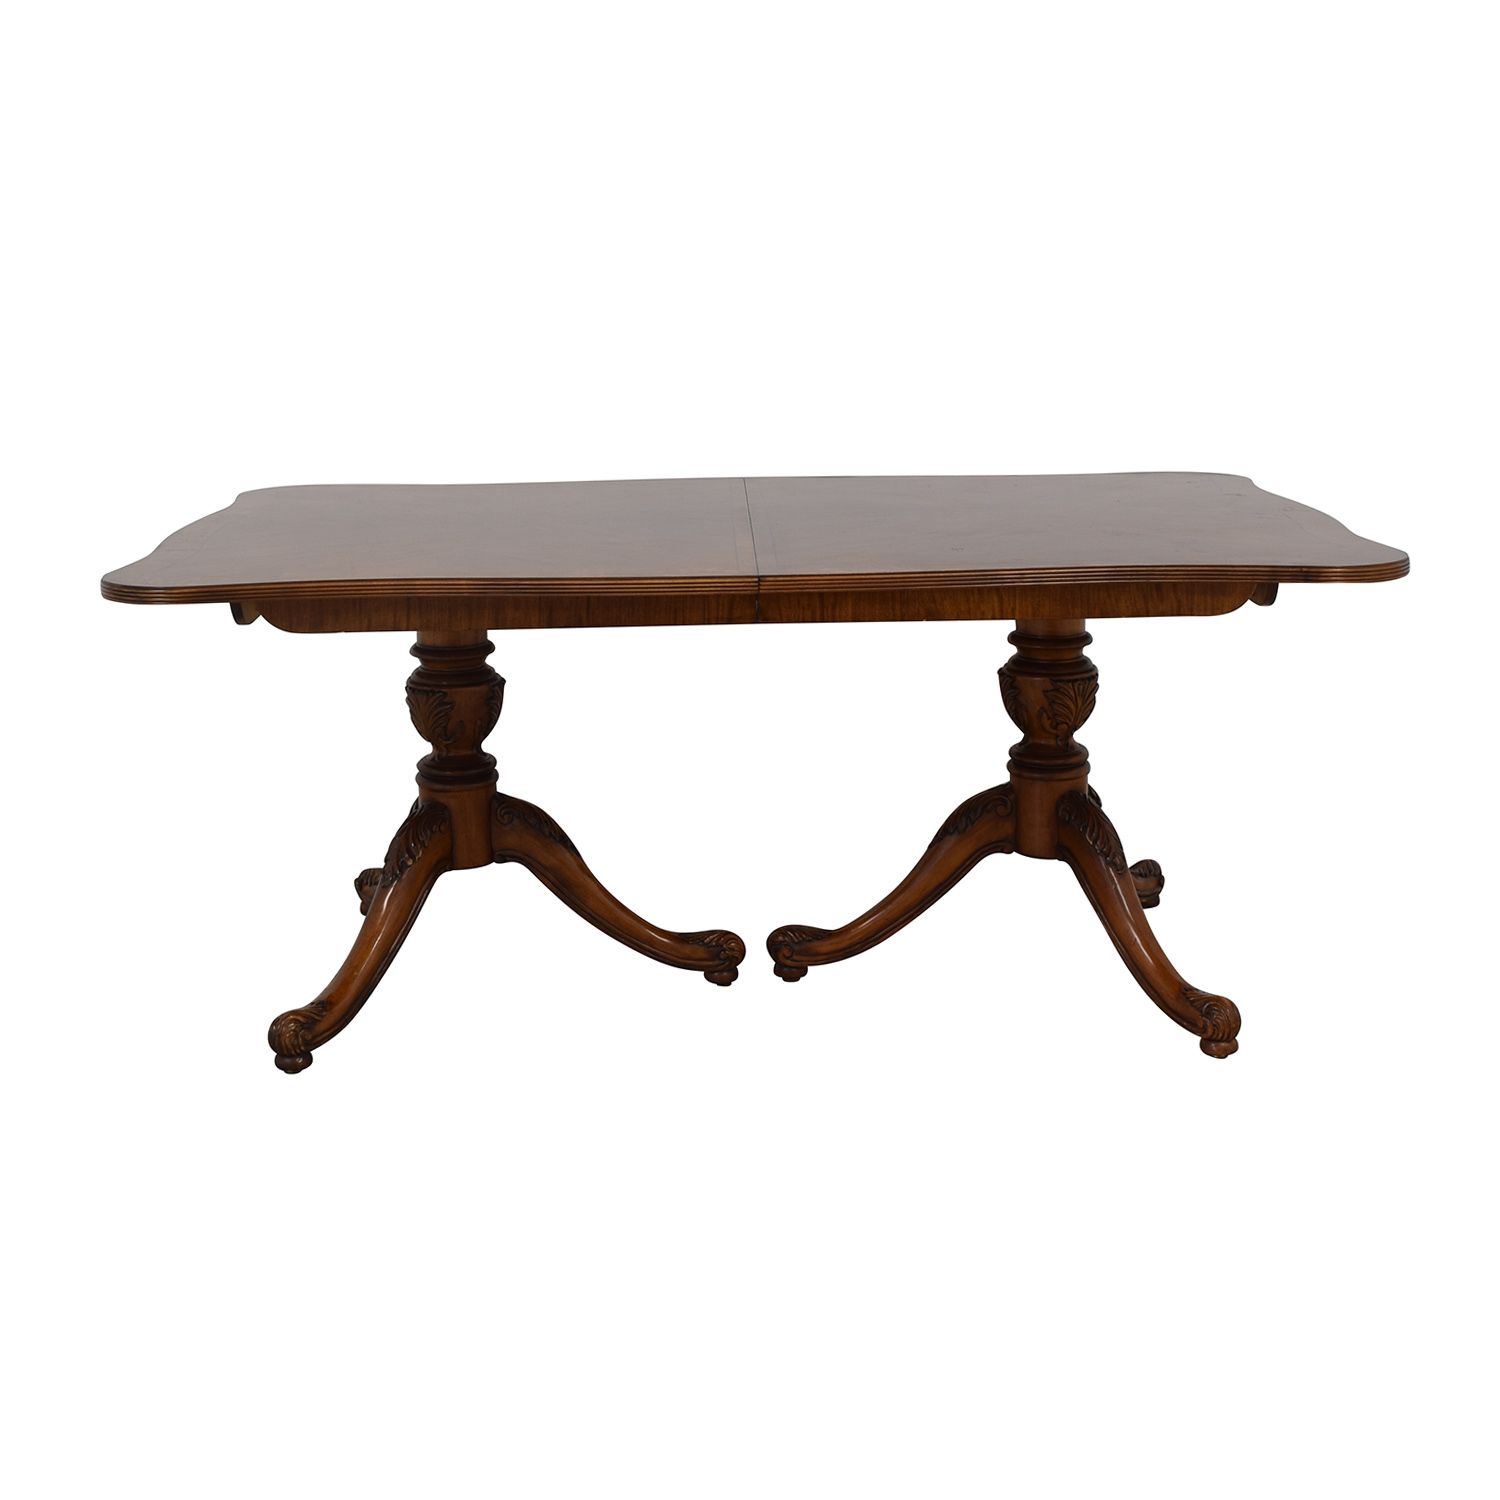 76% Off – Drexel Heritage Drexel Heritage Dining Table / Tables Pertaining To Current Mahogany Shayne Drop Leaf Kitchen Tables (Photo 18 of 25)